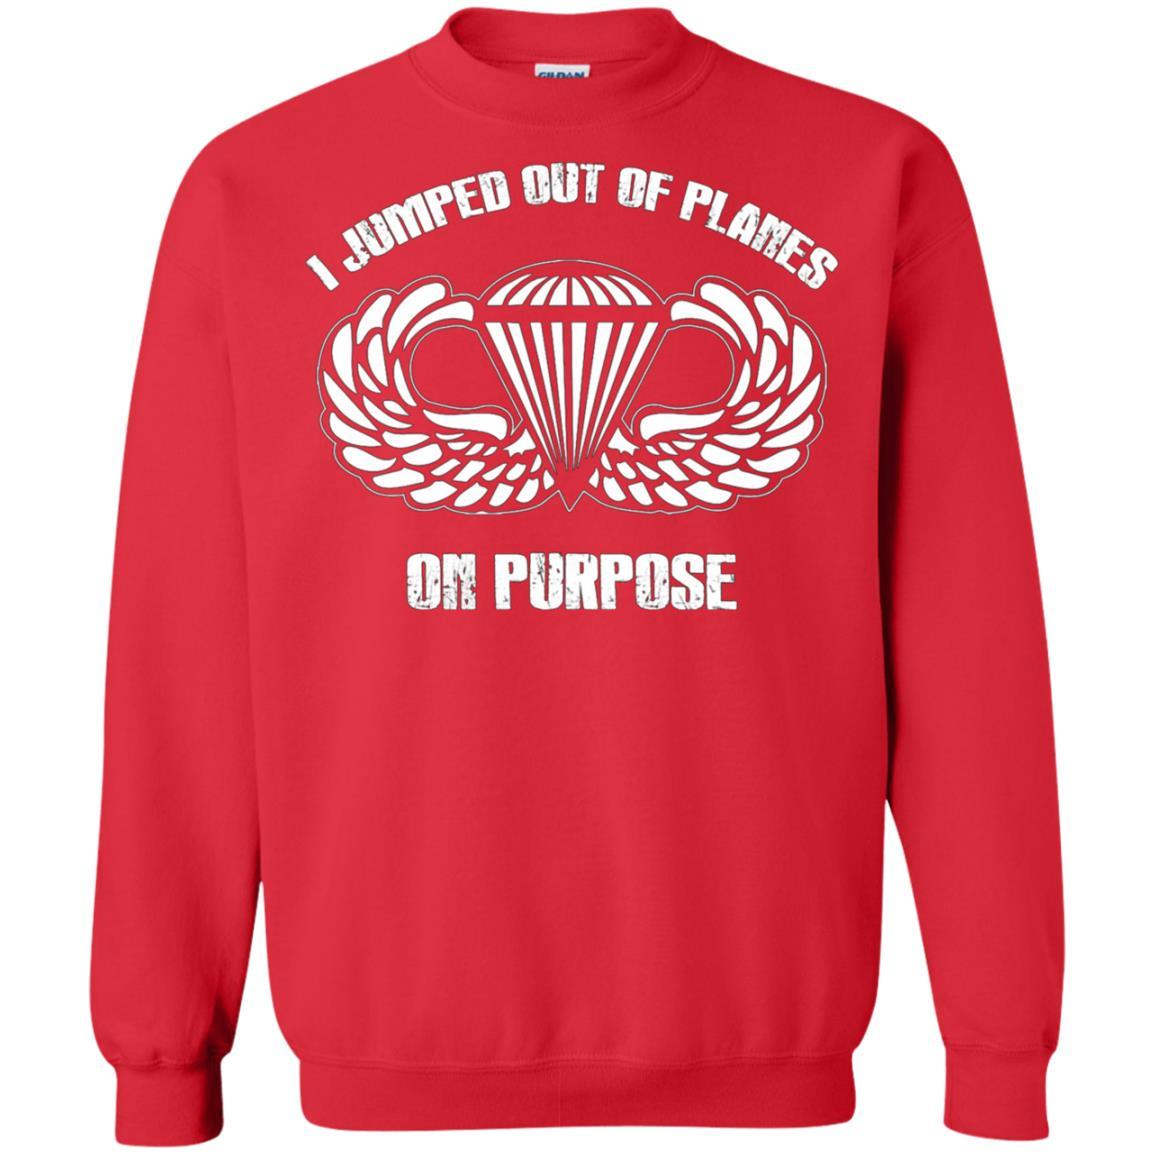 I jumped out of planes on purpose, Airborne - Crewneck Pullover Sweatshirt Red / 5XL